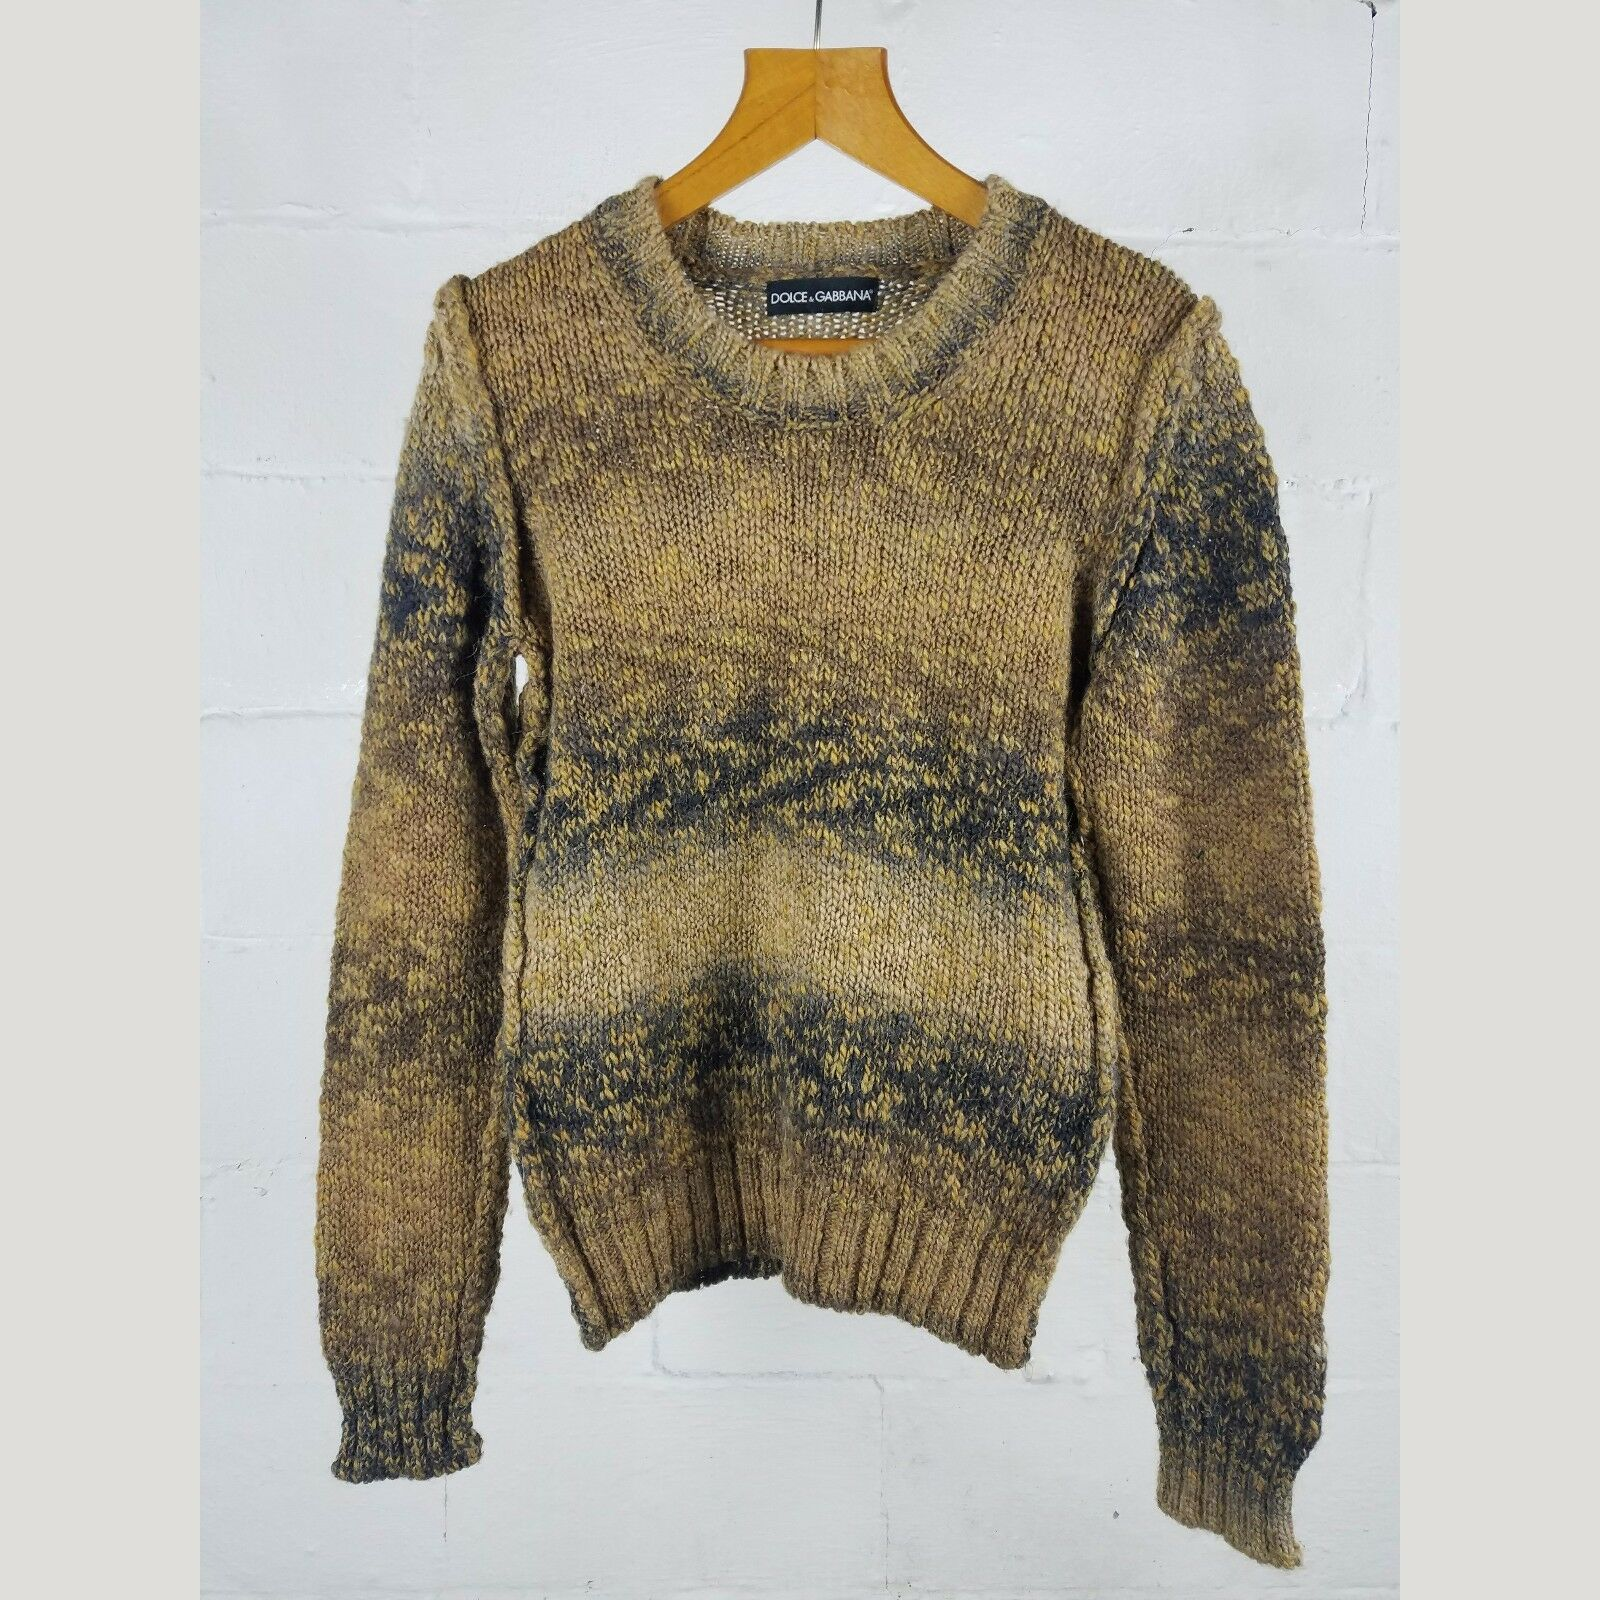 Dolce & Gabbana Virgin Wool Alpaca Knit Autumn Sweater 44 S